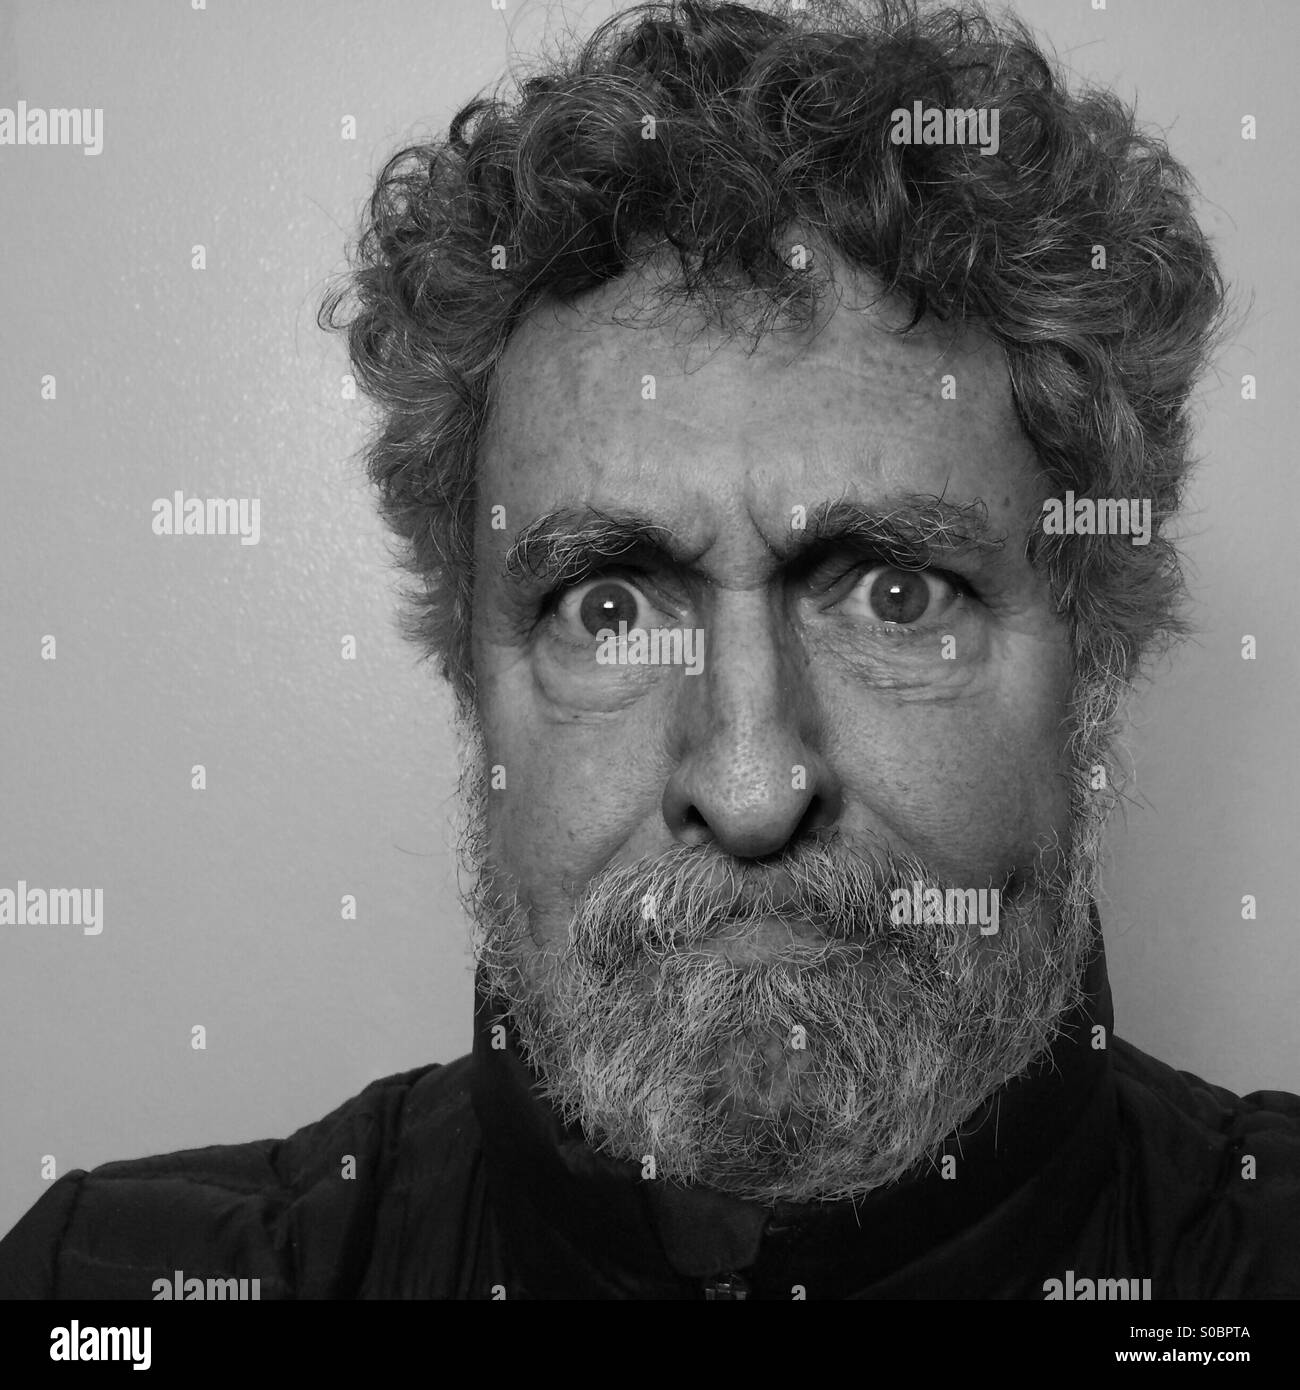 White man, age 64, with beard and expression of anger and frustration , close-up, Seattle, USA - Stock Image